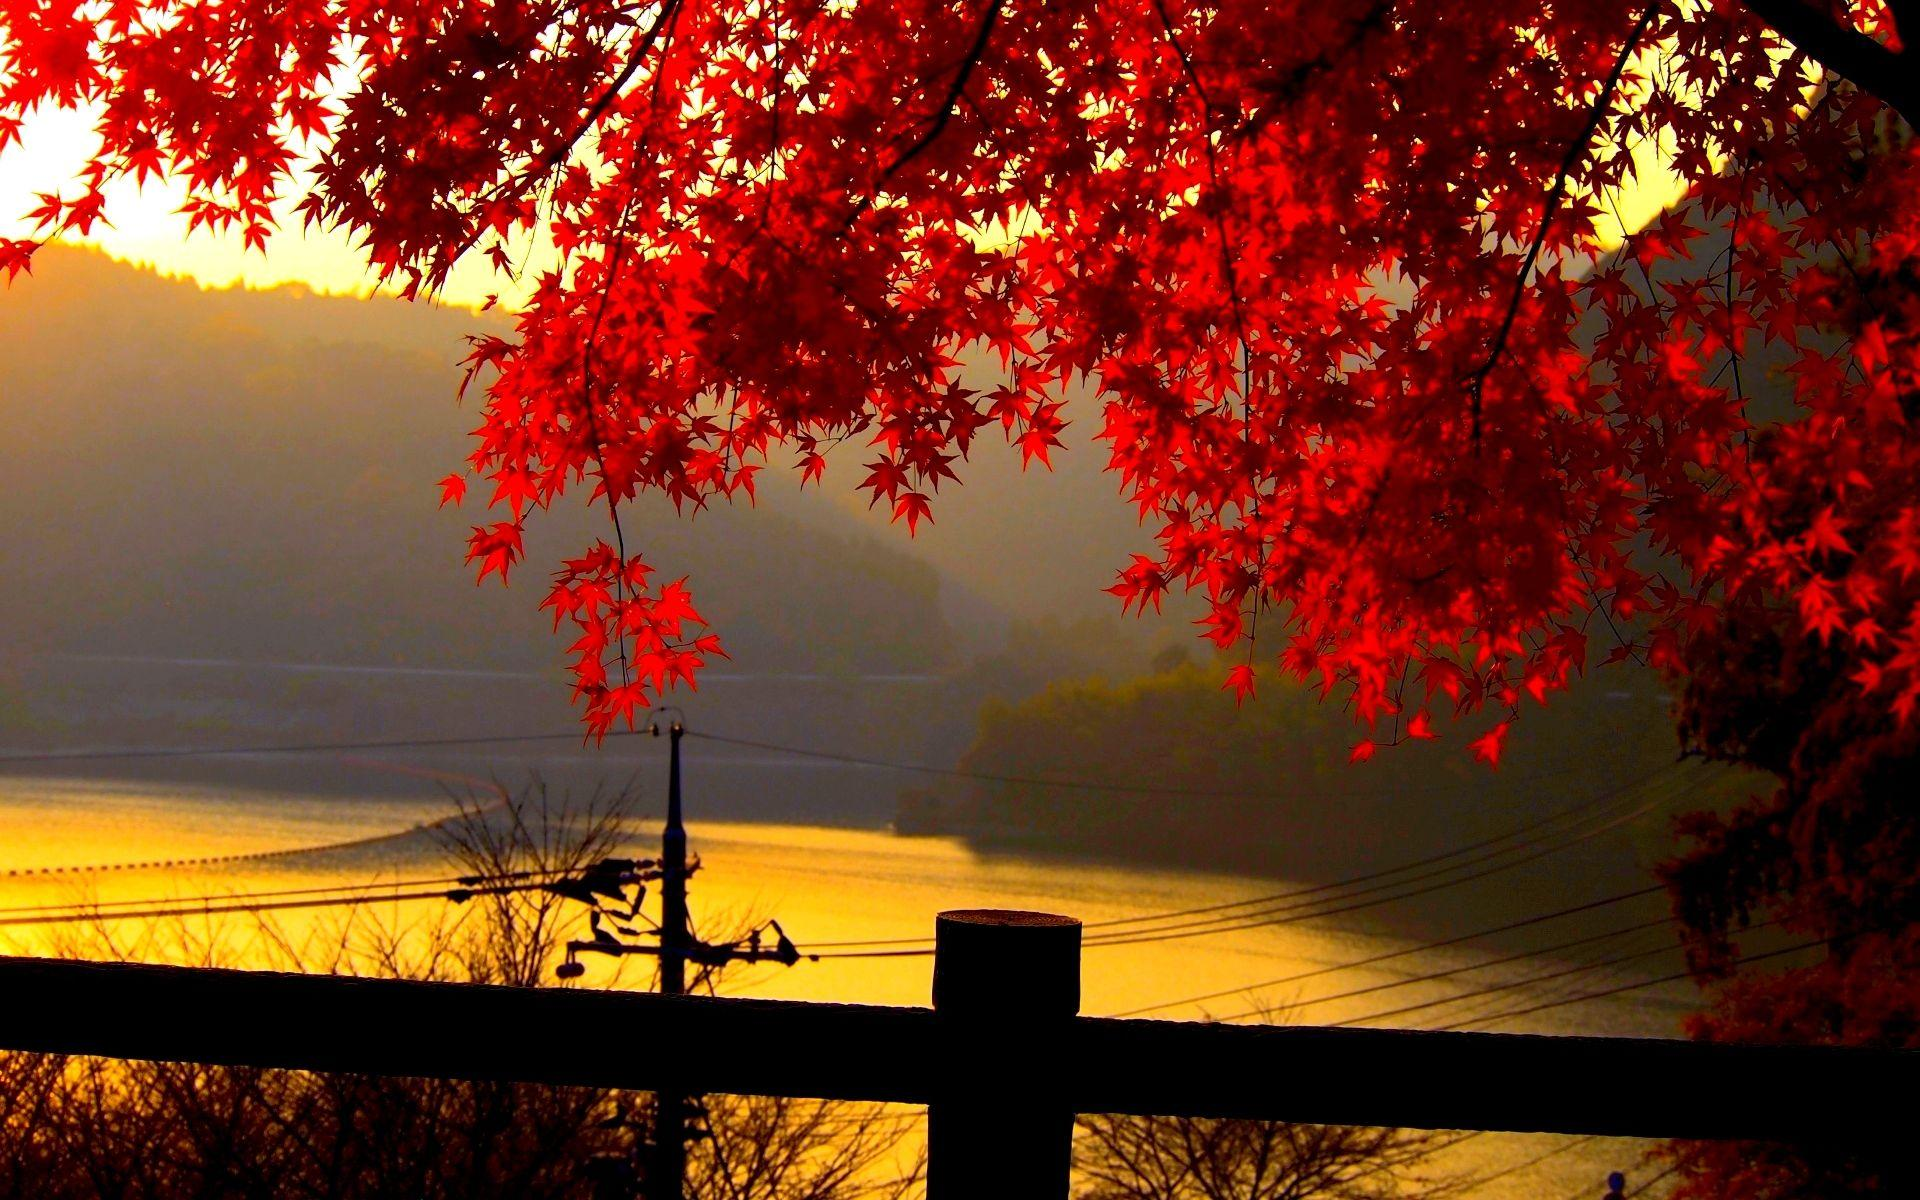 Fall Leaves Wallpaper Full Hd • dodskypict